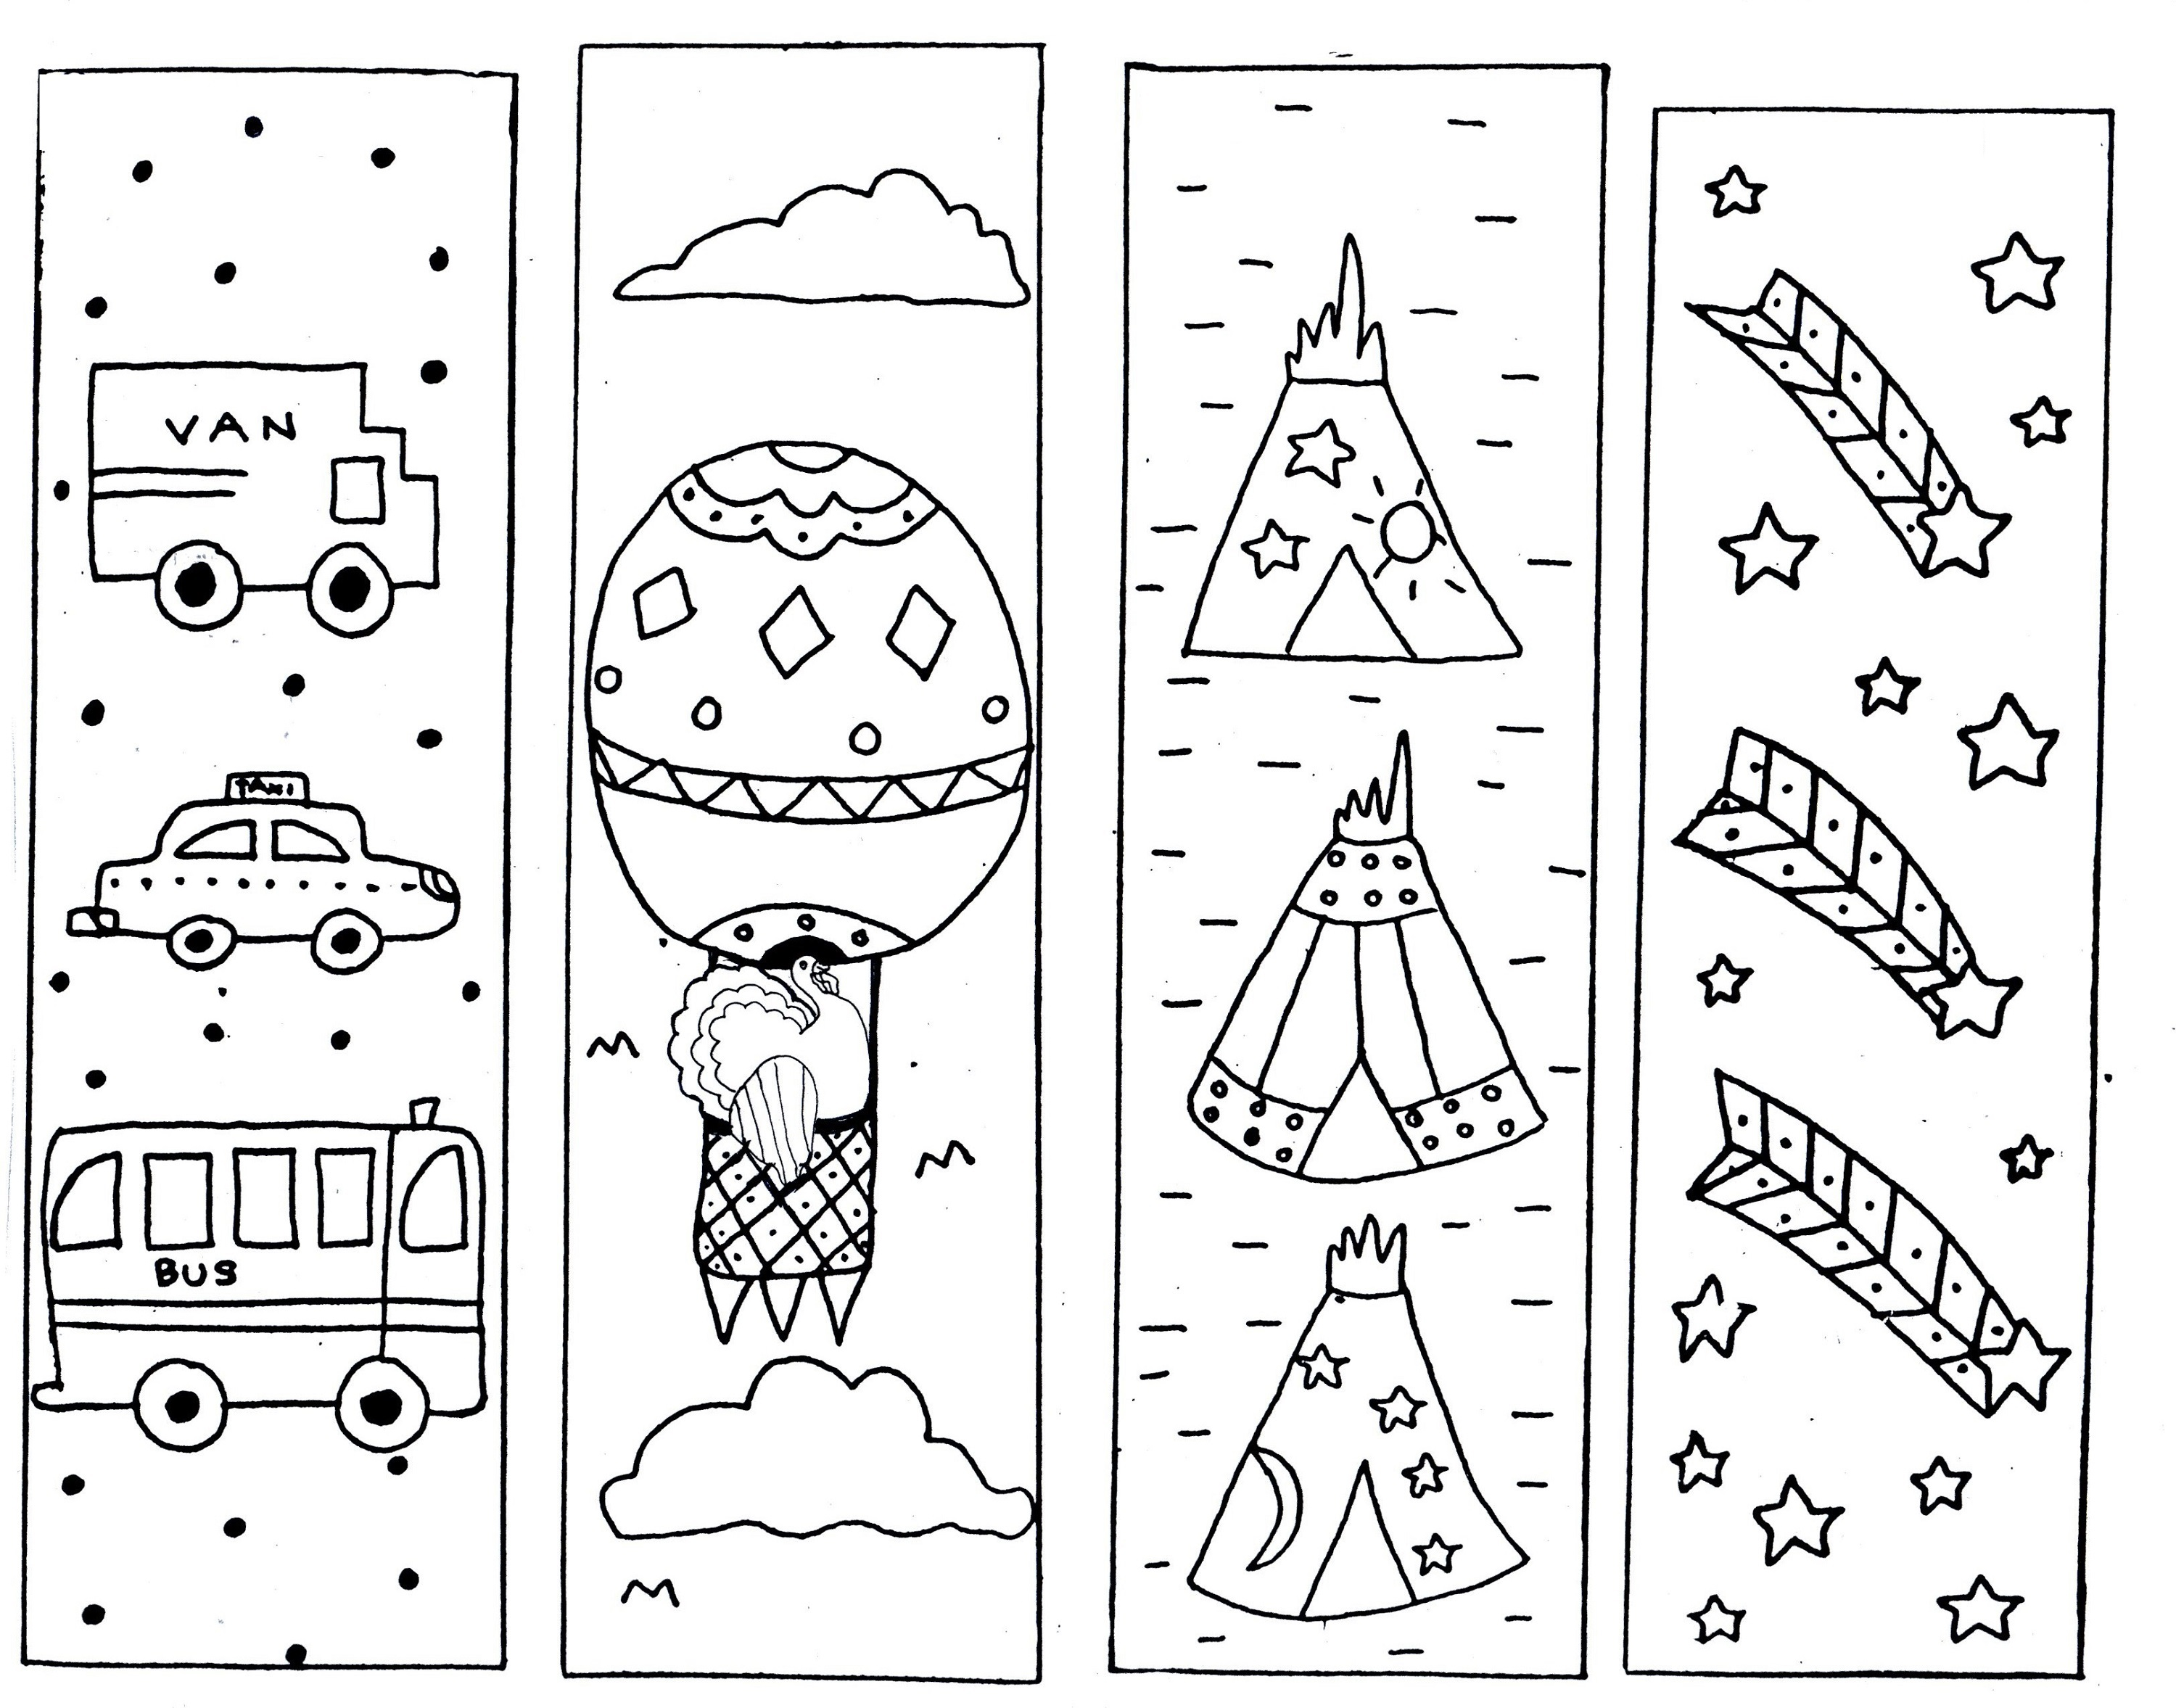 Printable Bookmarks to Color In practice